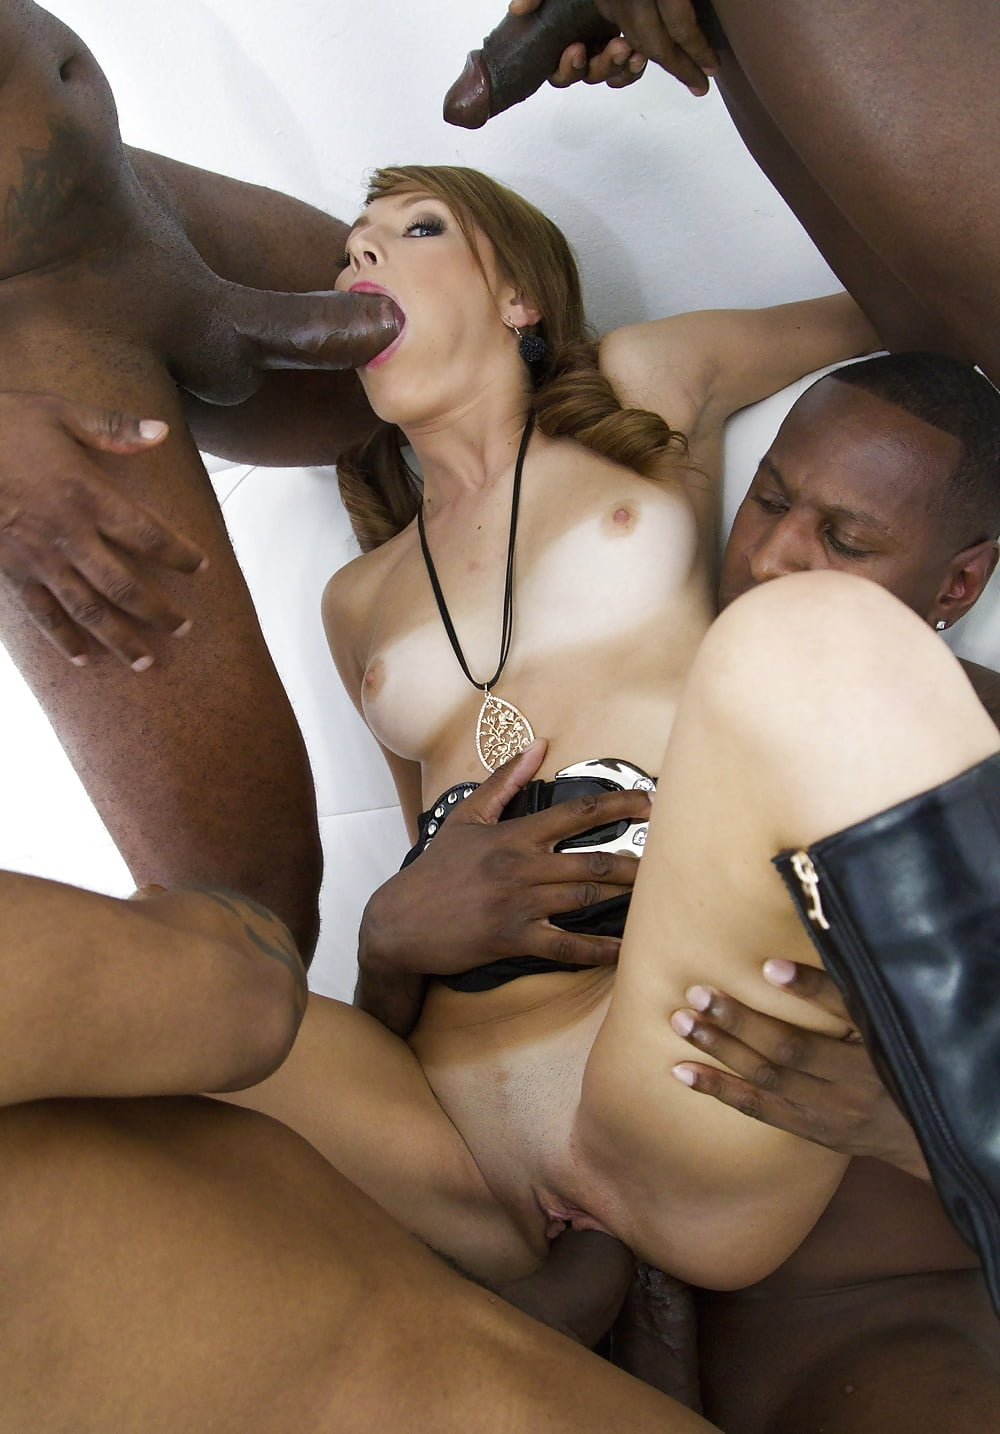 Watch Free Interracial Milf Porn Pics And Xxx Sex Clips Online